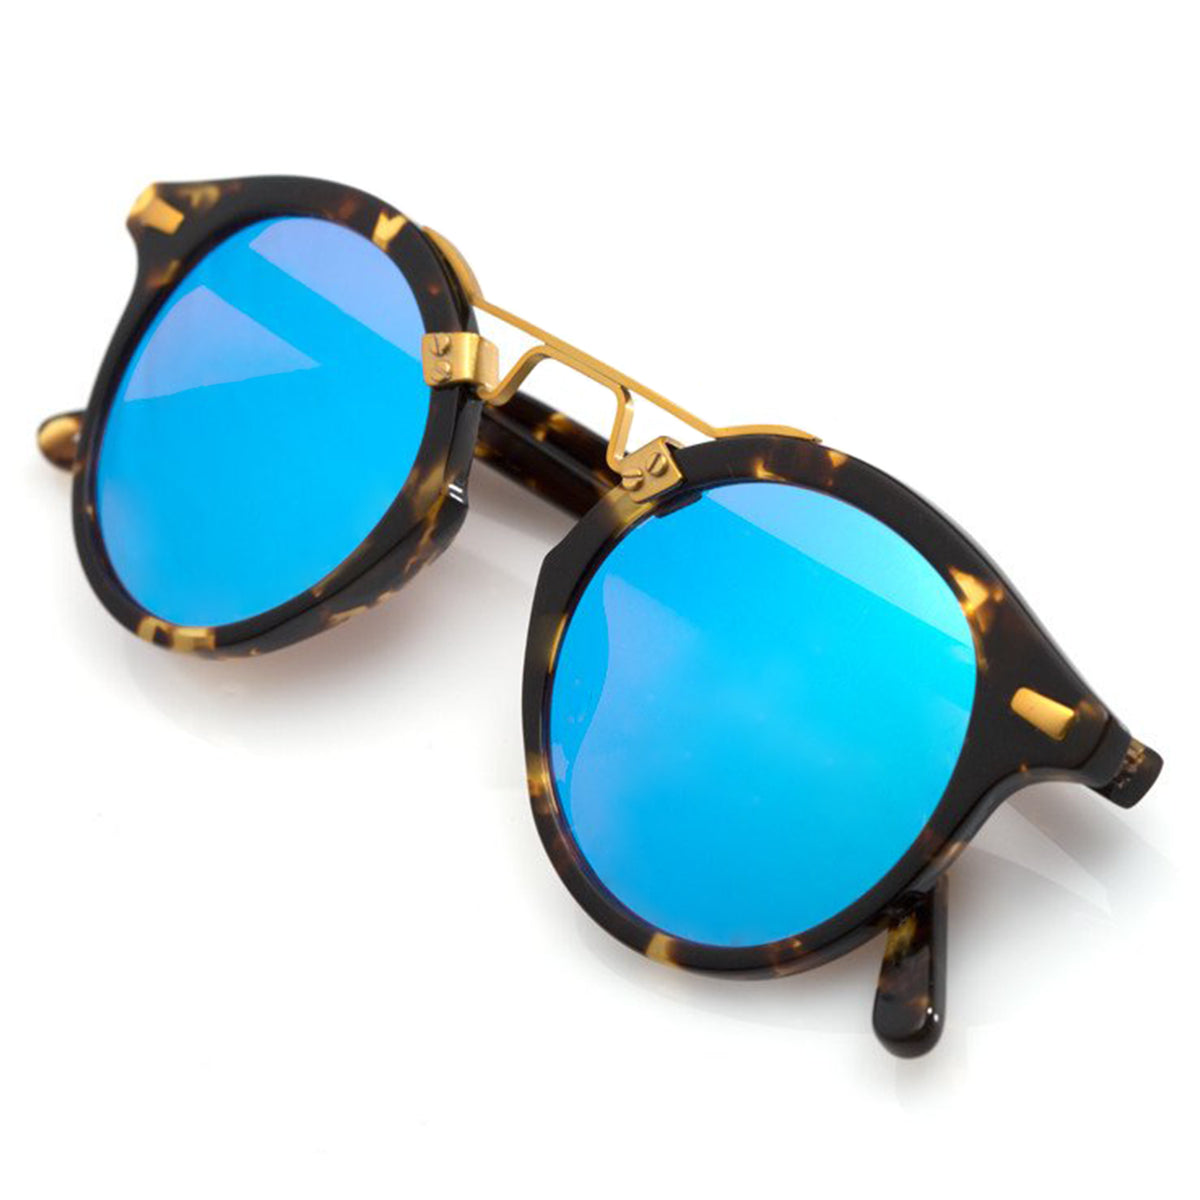 ST. LOUIS MIRRORED | Bengal Blue 24K